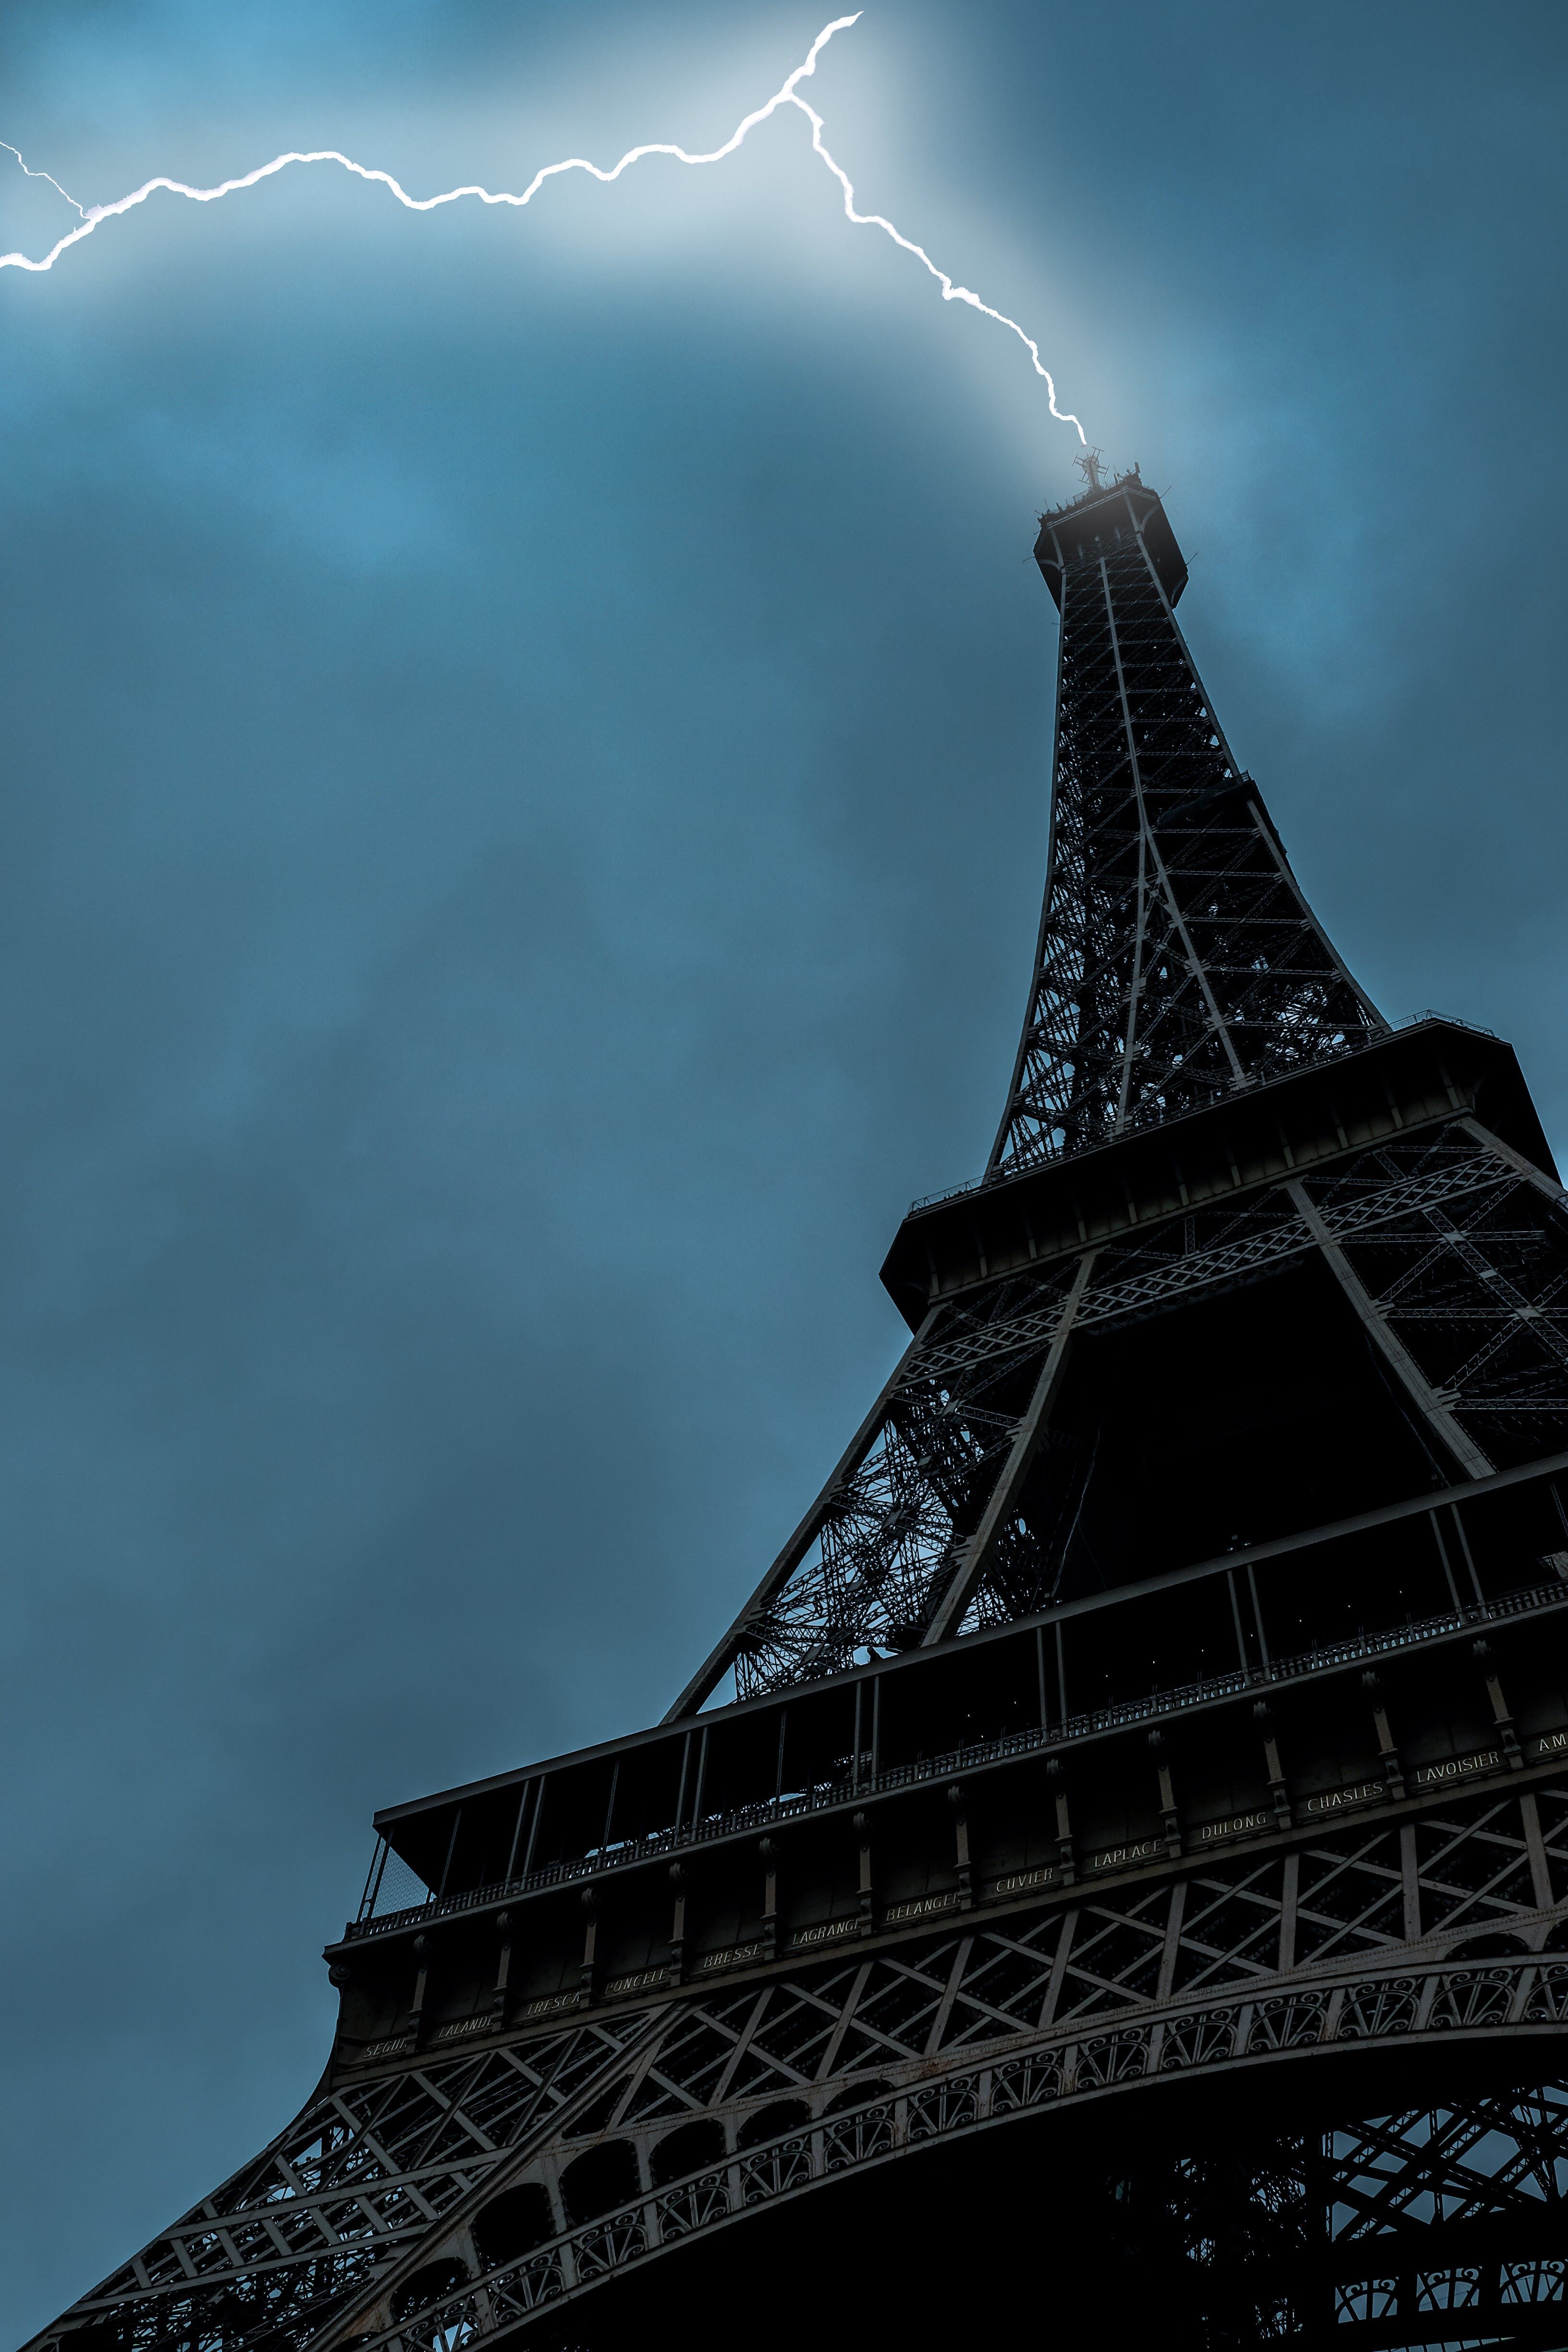 Low-angle Photo of Eiffel Tower Struck by Lightning